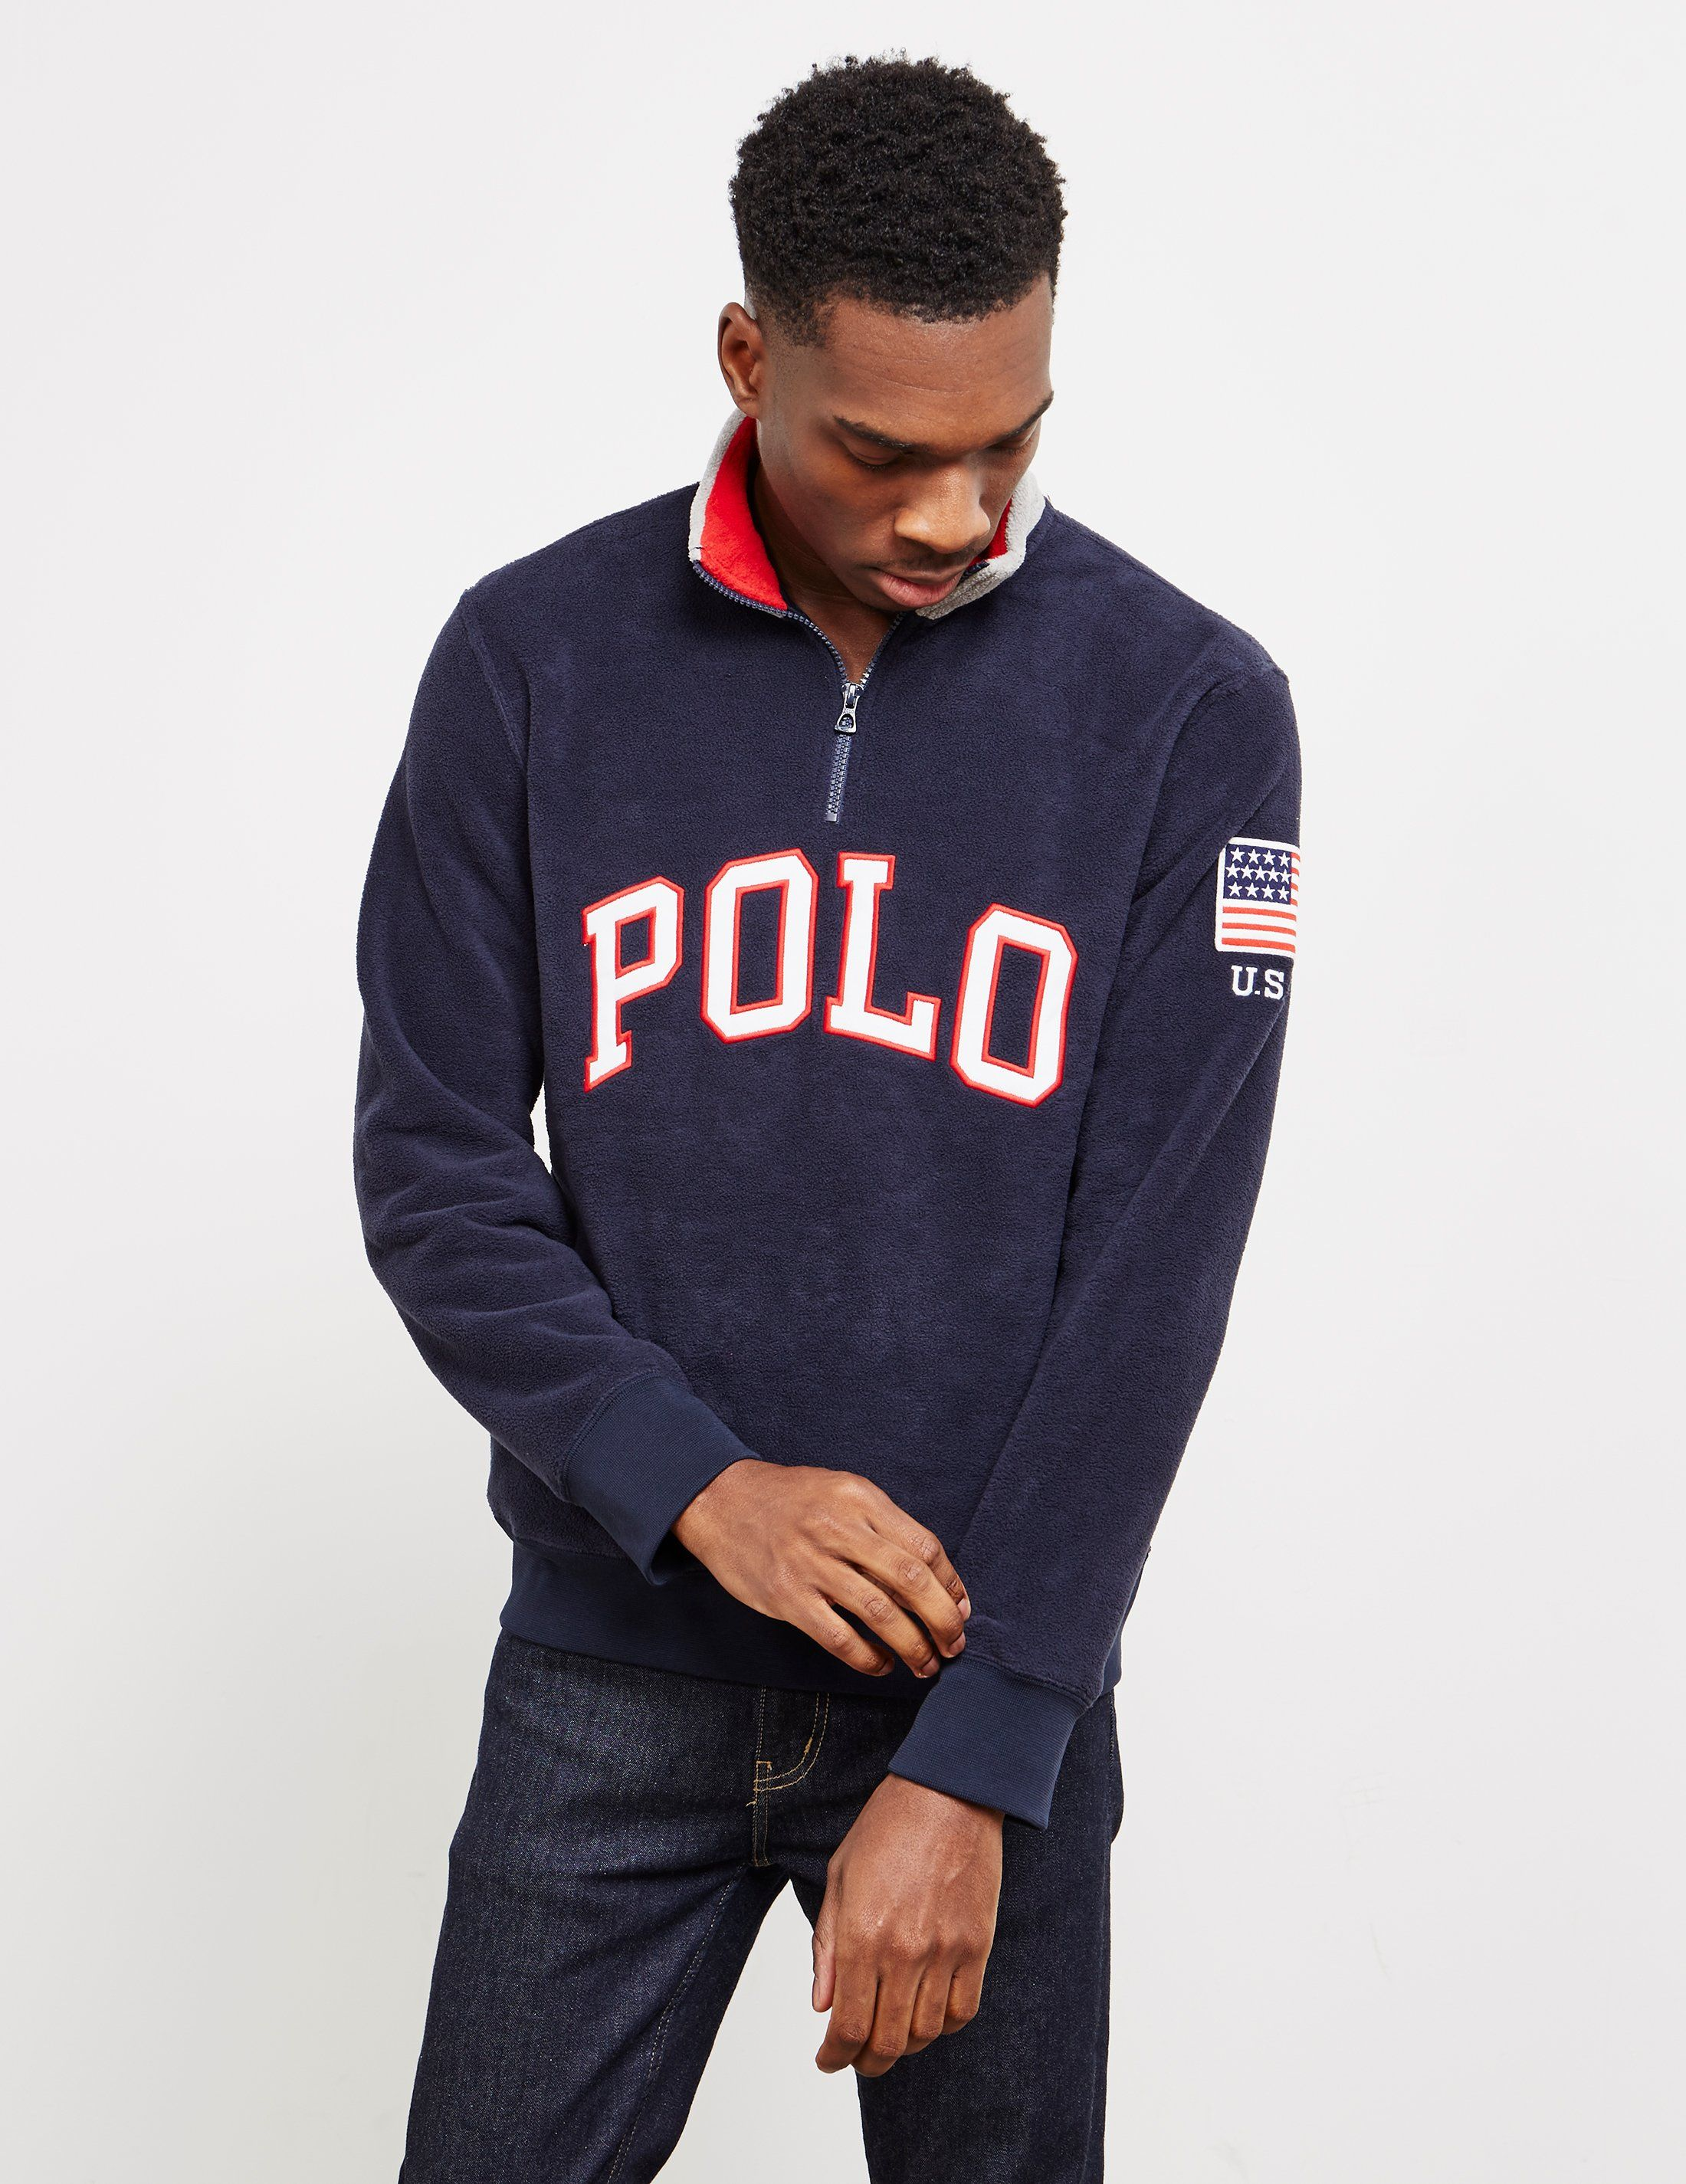 Polo Ralph Lauren Half Zip Polo Fleece Sweatshirt